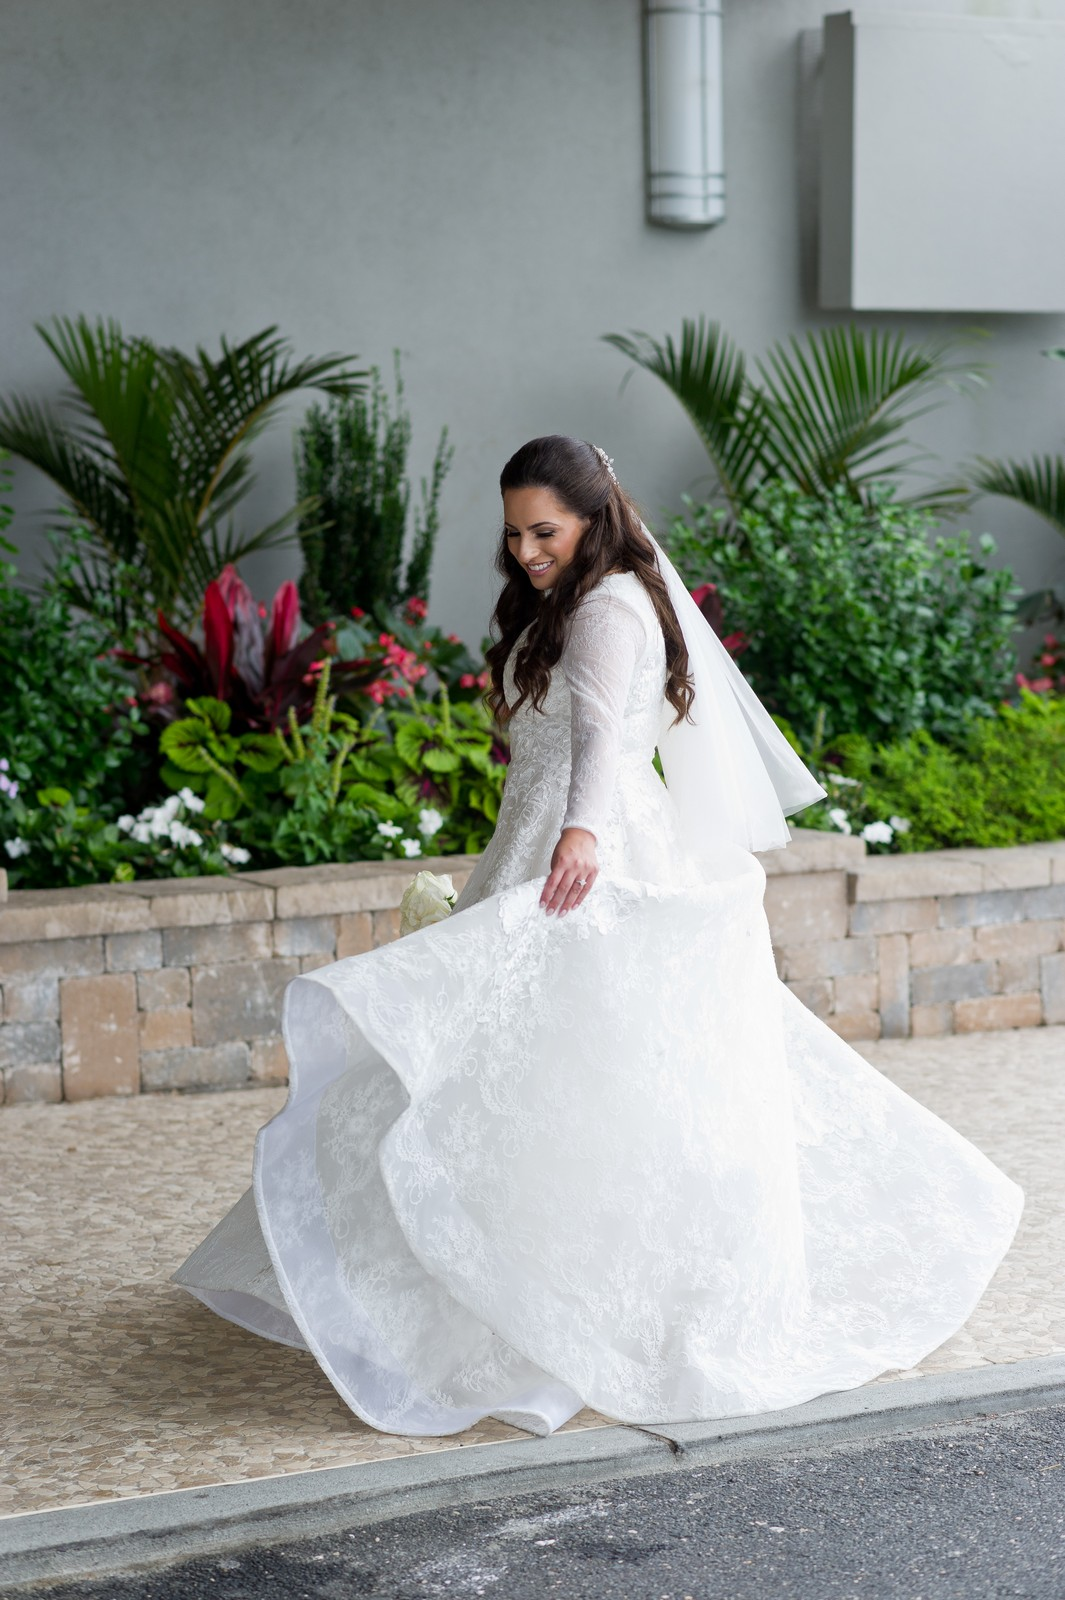 Talya and Michael's Modern Orthodox Jewish Wedding at The Sands, Atlantic Beach, NY Photos by Chaim Schvarcz Bride Portraits